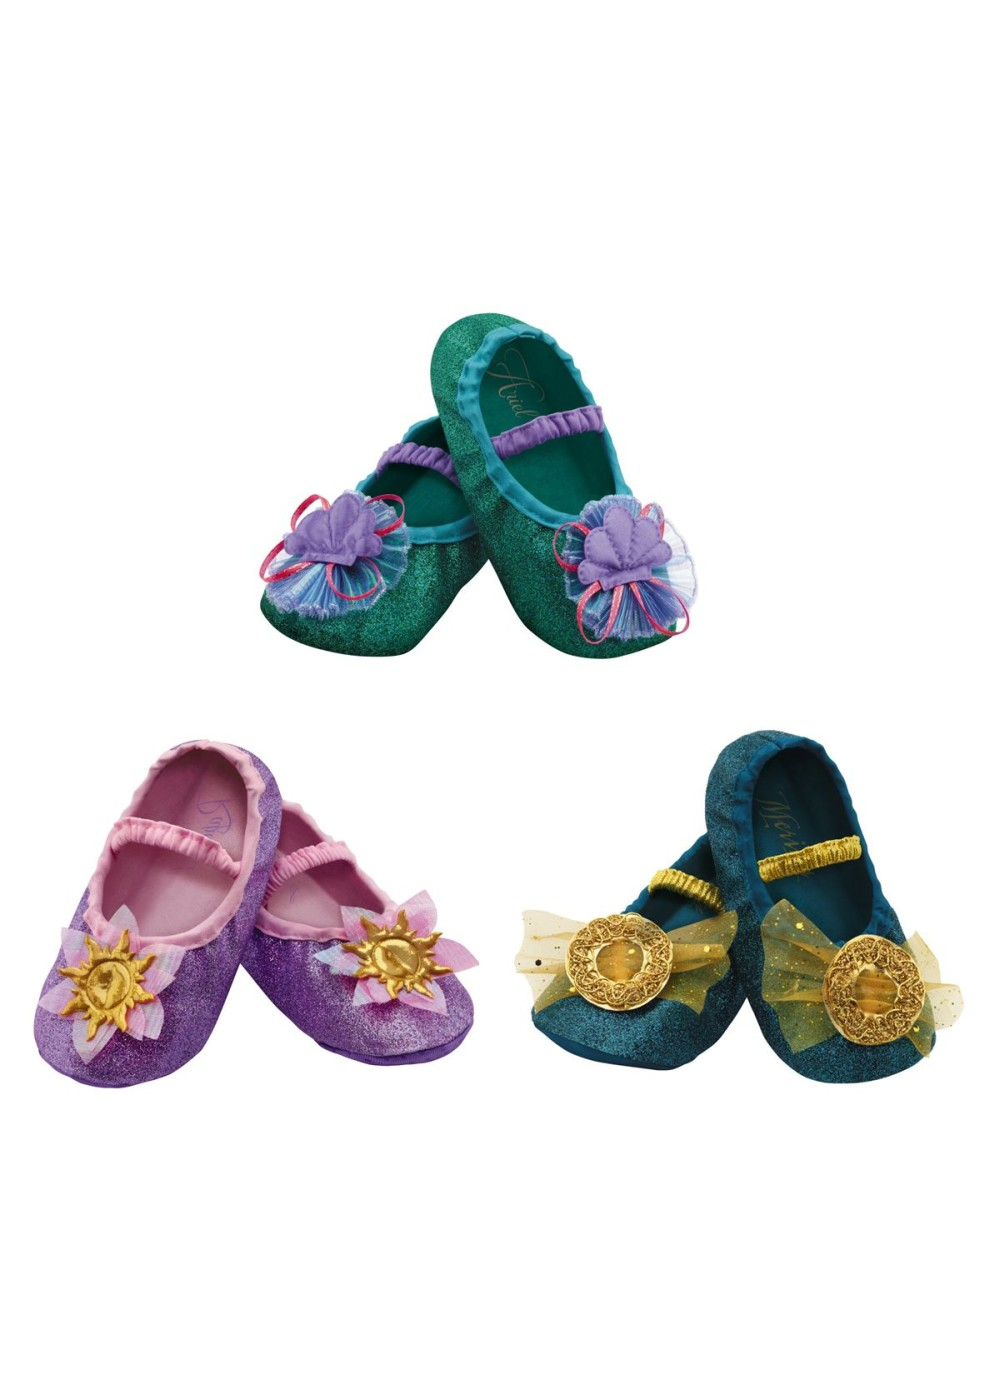 Disney Princess Merida Ariel Rapunzel Slippers Kit